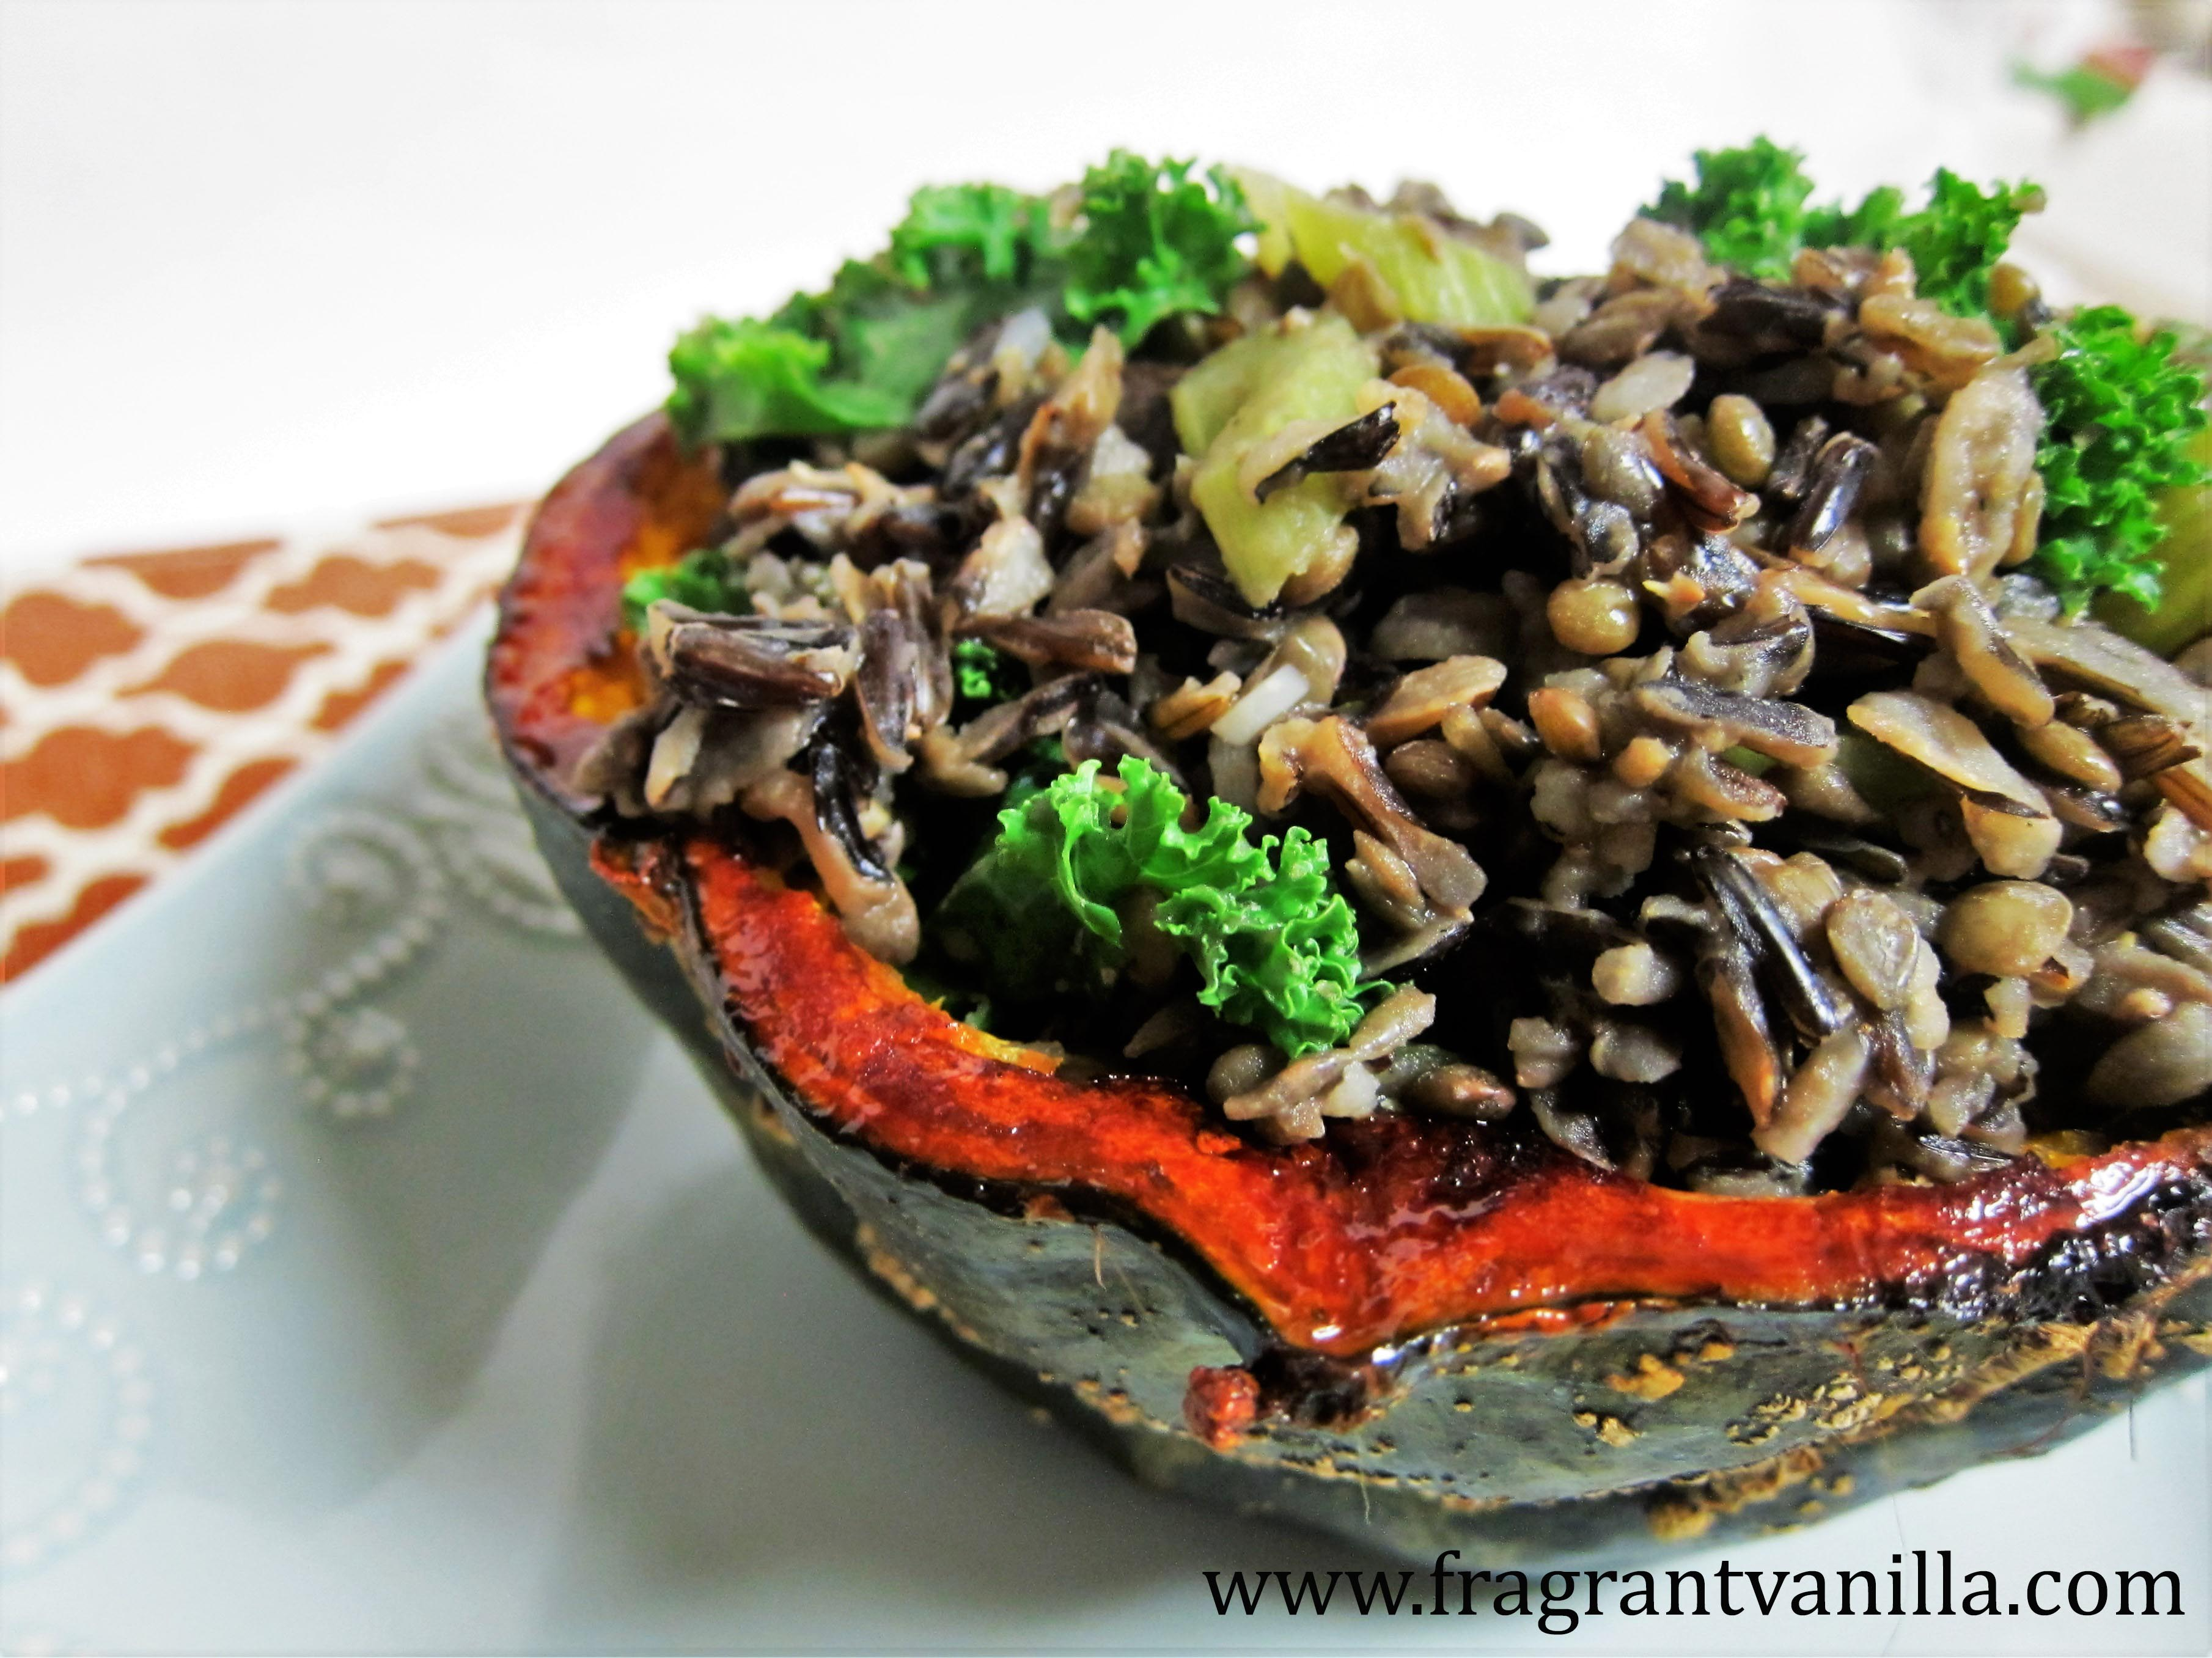 Savory Lentil and Wild Rice Stuffed Squash